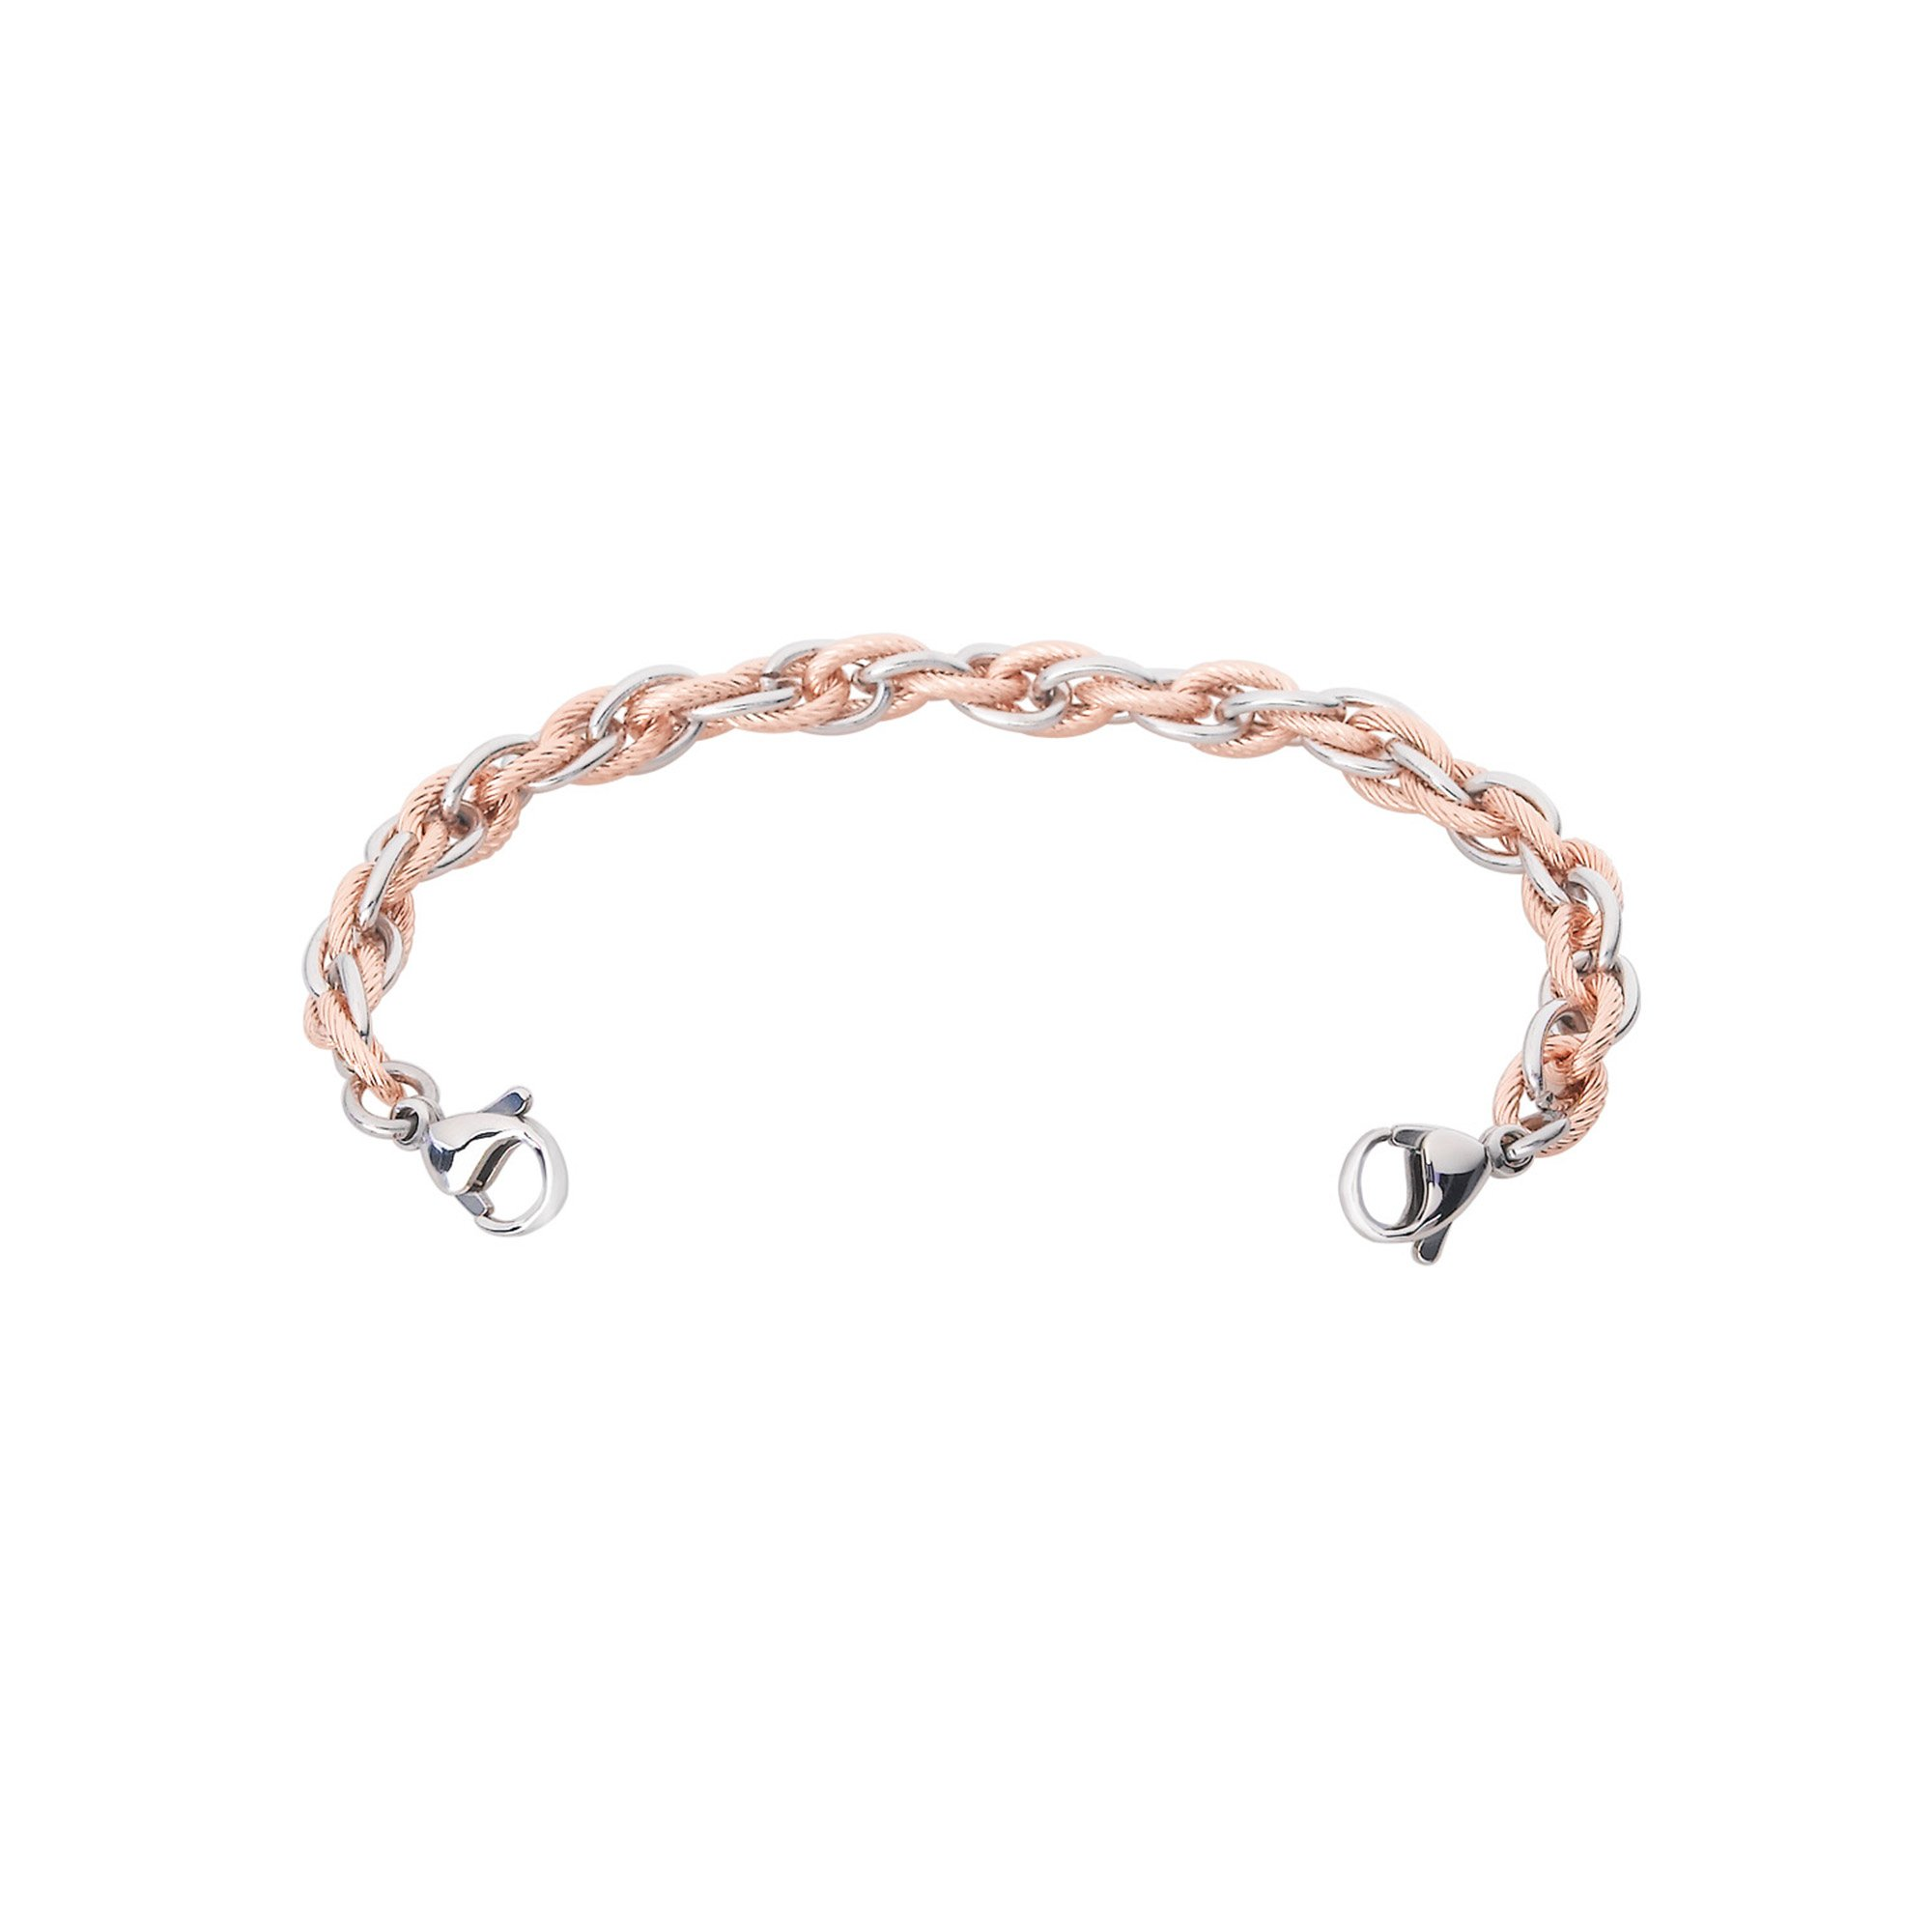 Divoti Inter-Mesh Rose Gold & Silver Stainless Steel Interchangeable Medical Alert Replacement Bracelet for Women -7.5''